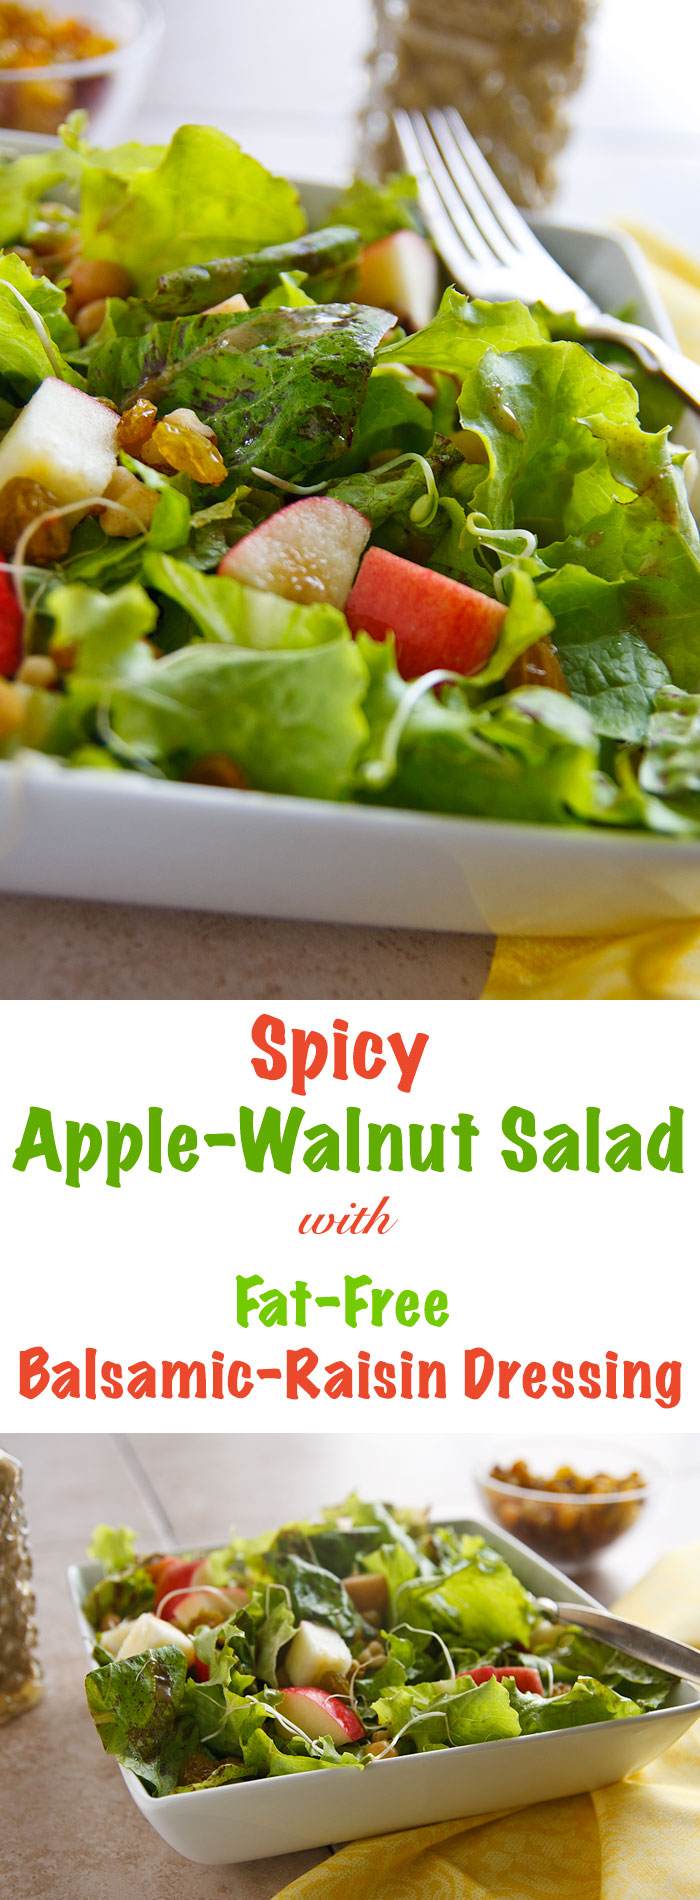 This vegan salad combines the sweetness of apples and raisins with the heat of jalapeño peppers and a naturally sweetened fat-free balsamic dressing.